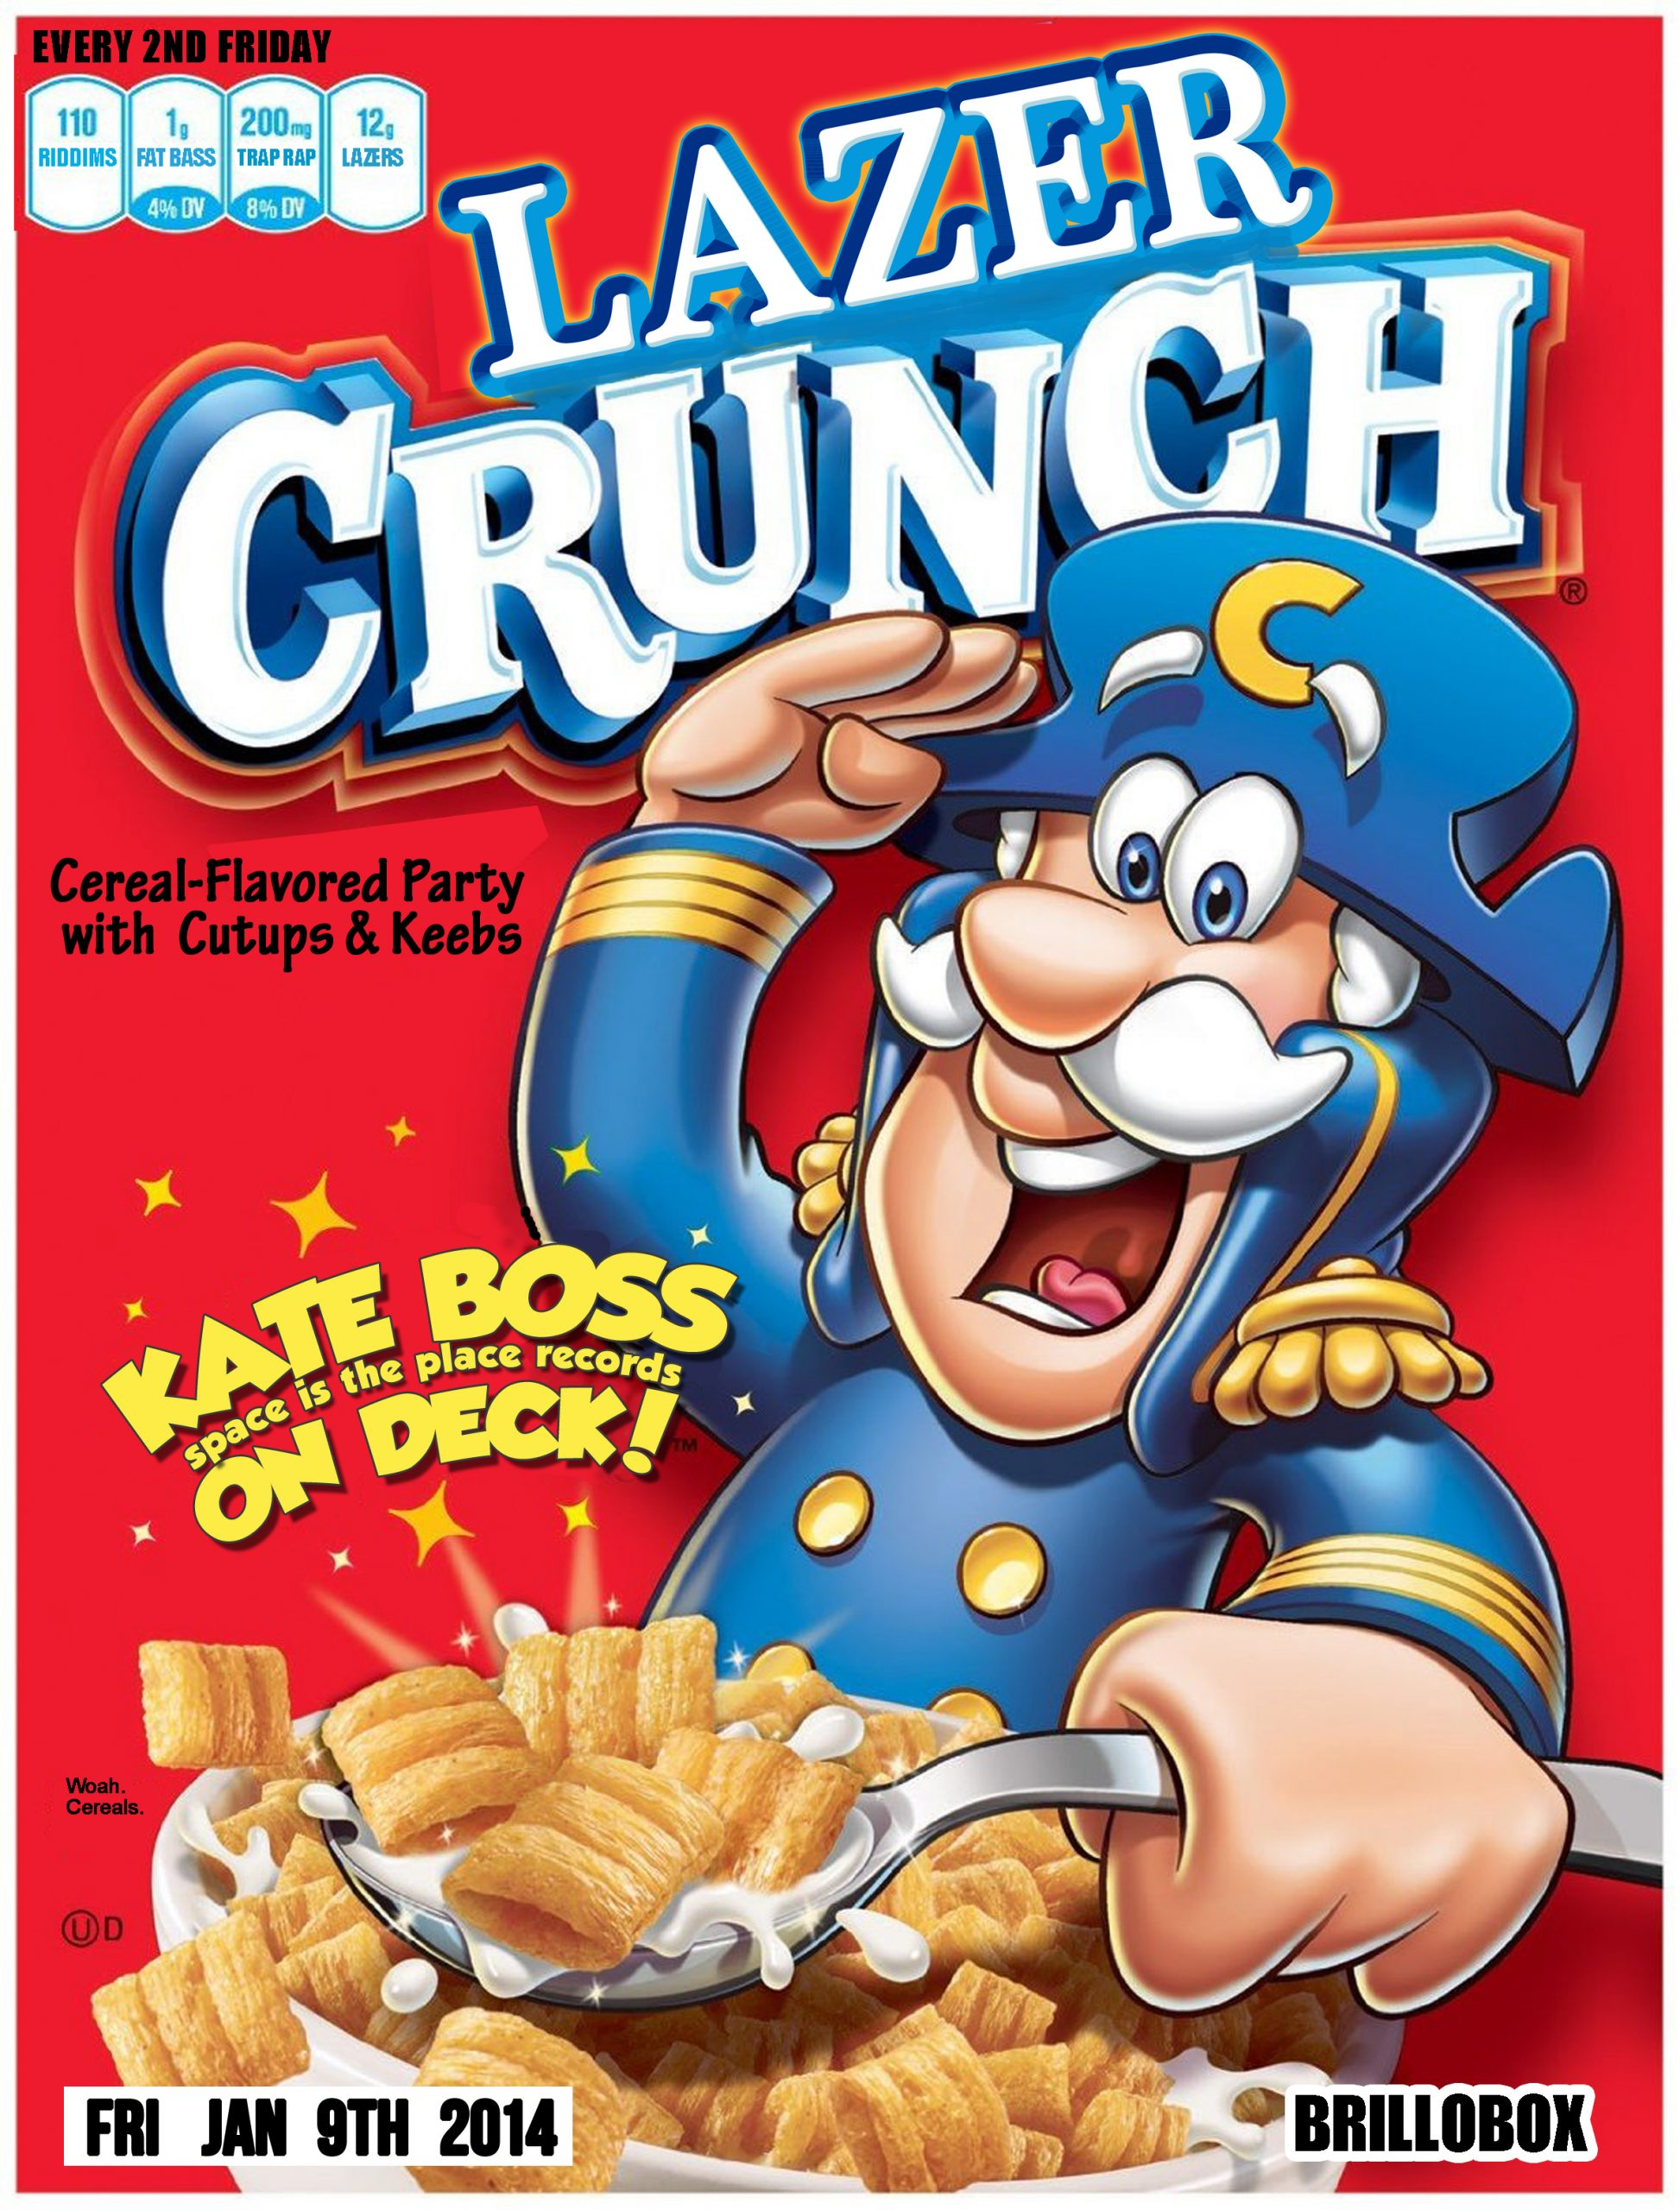 Fri Jan 9th LazerCRUNCH *cereal party* w/ Kate Boss (spaceistheplace) + Cutups & Keeb$ @ Brillobox